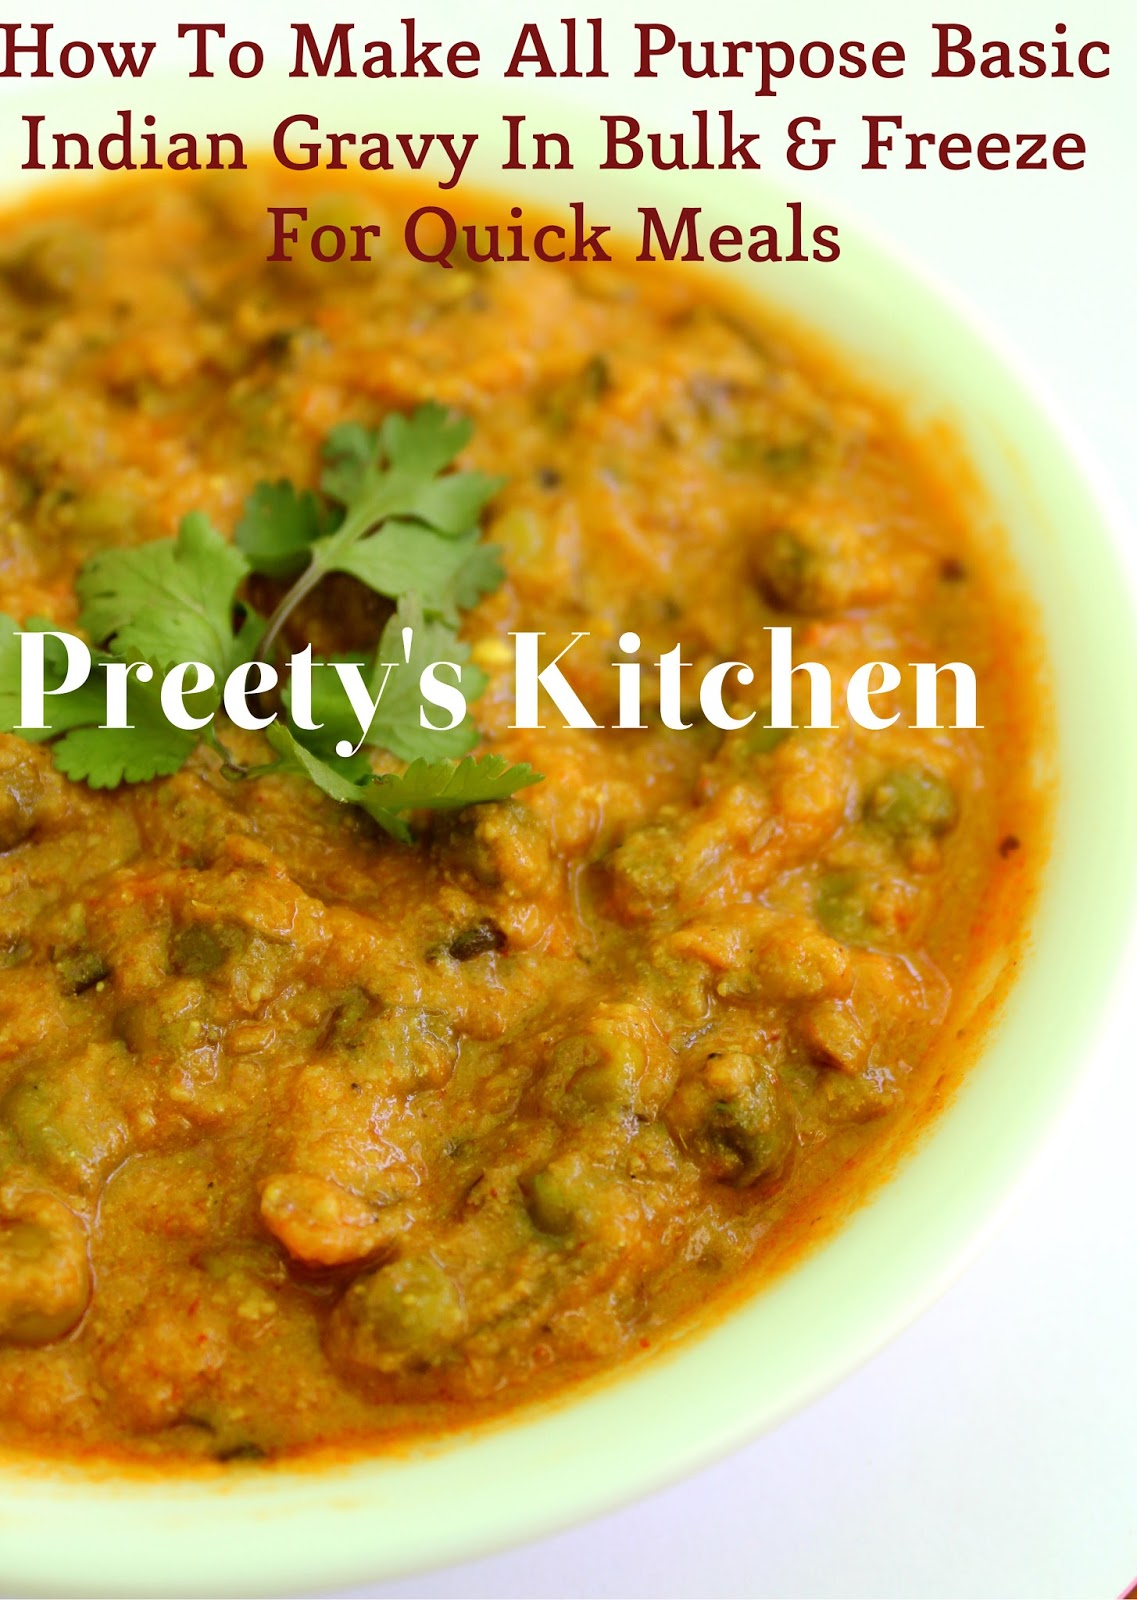 Preetys kitchen how to make all purpose basic indian gravy in bulk how to make all purpose basic indian gravy in bulk freeze for quick meals vegan recipe forumfinder Image collections